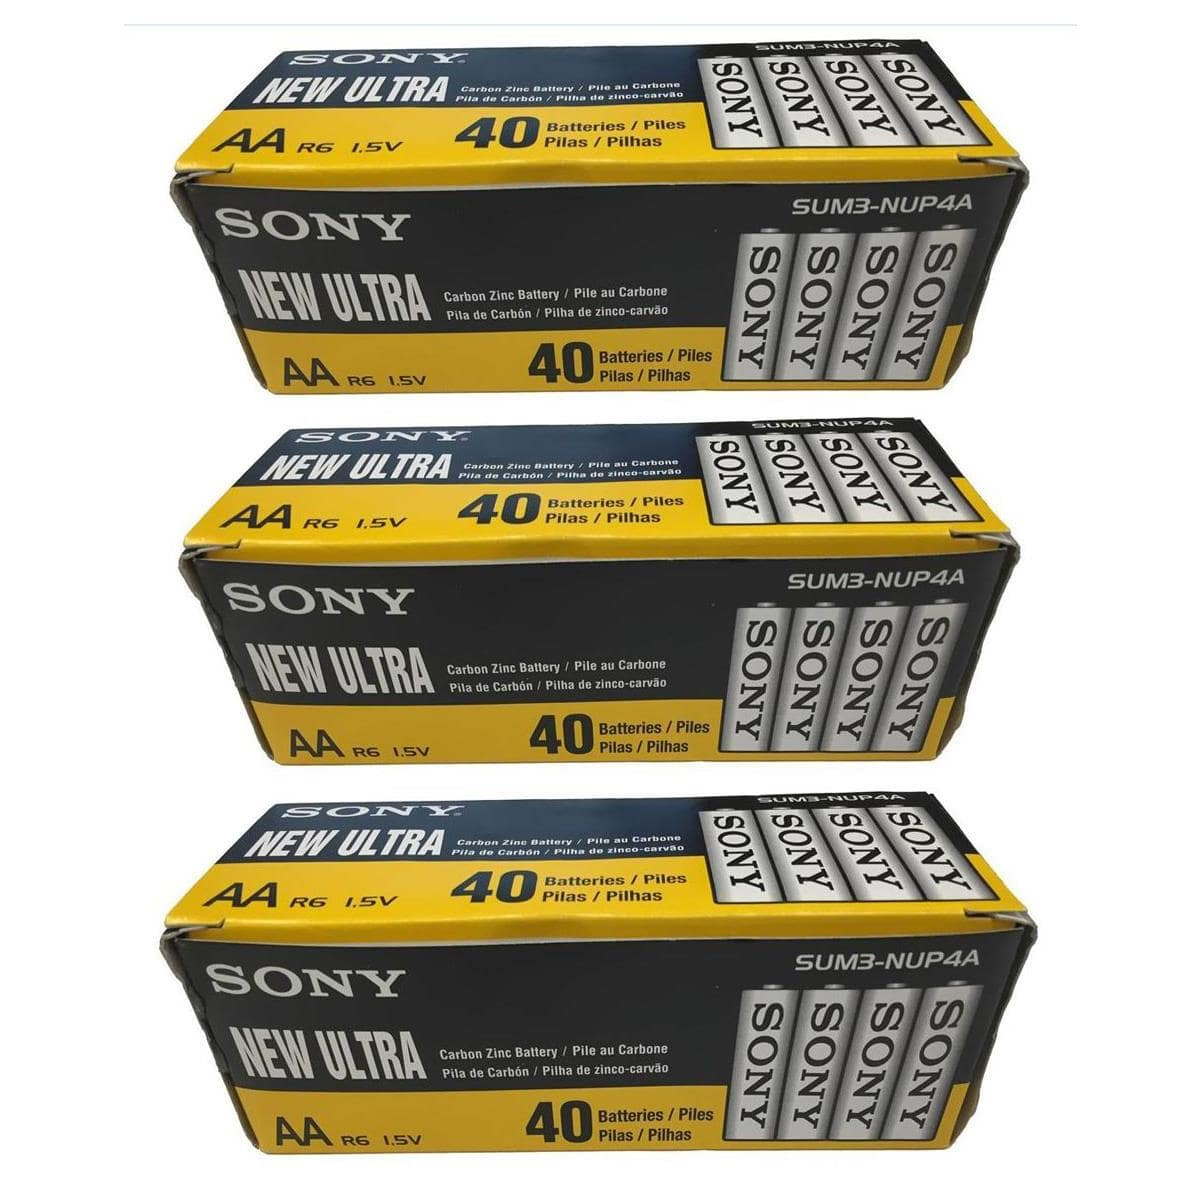 120 Pack Of Sony Ultra Heavy Duty Carbon Zinc Batteries (AA size). $25 + Free Shipping @ Adorama